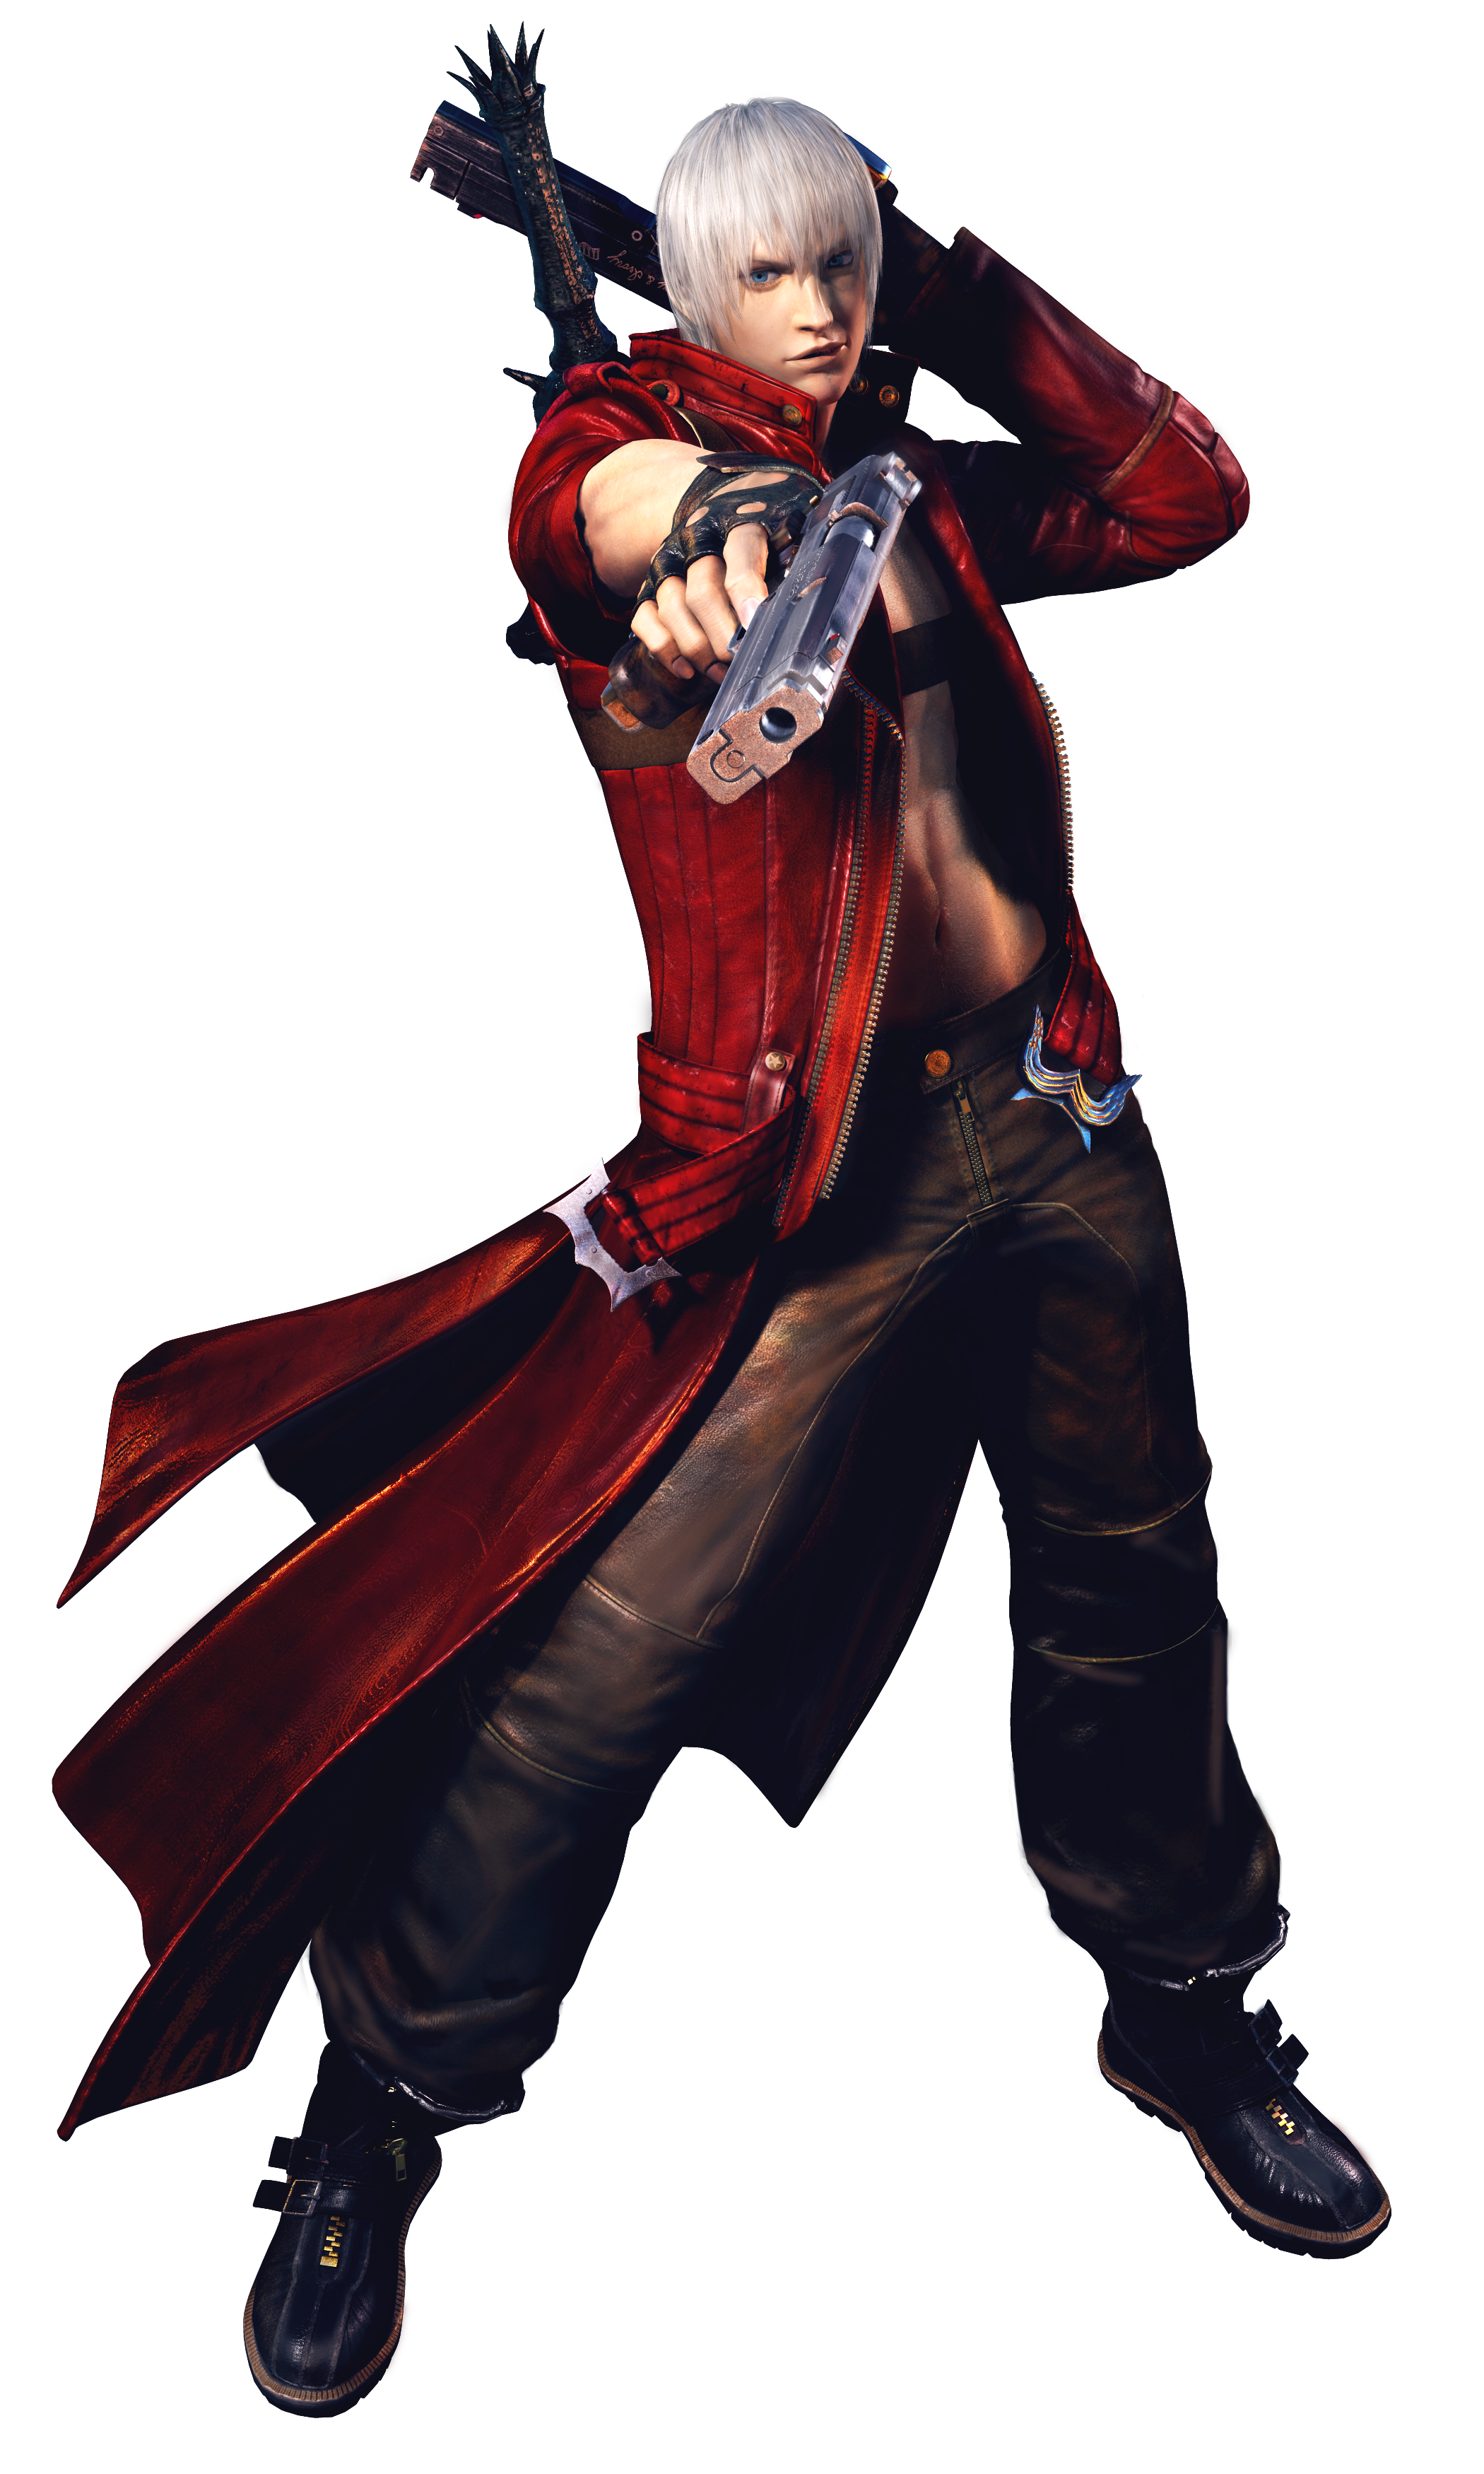 Dante do デビル メイ クライ Debiru Mei Kurai (Devil May Cry)